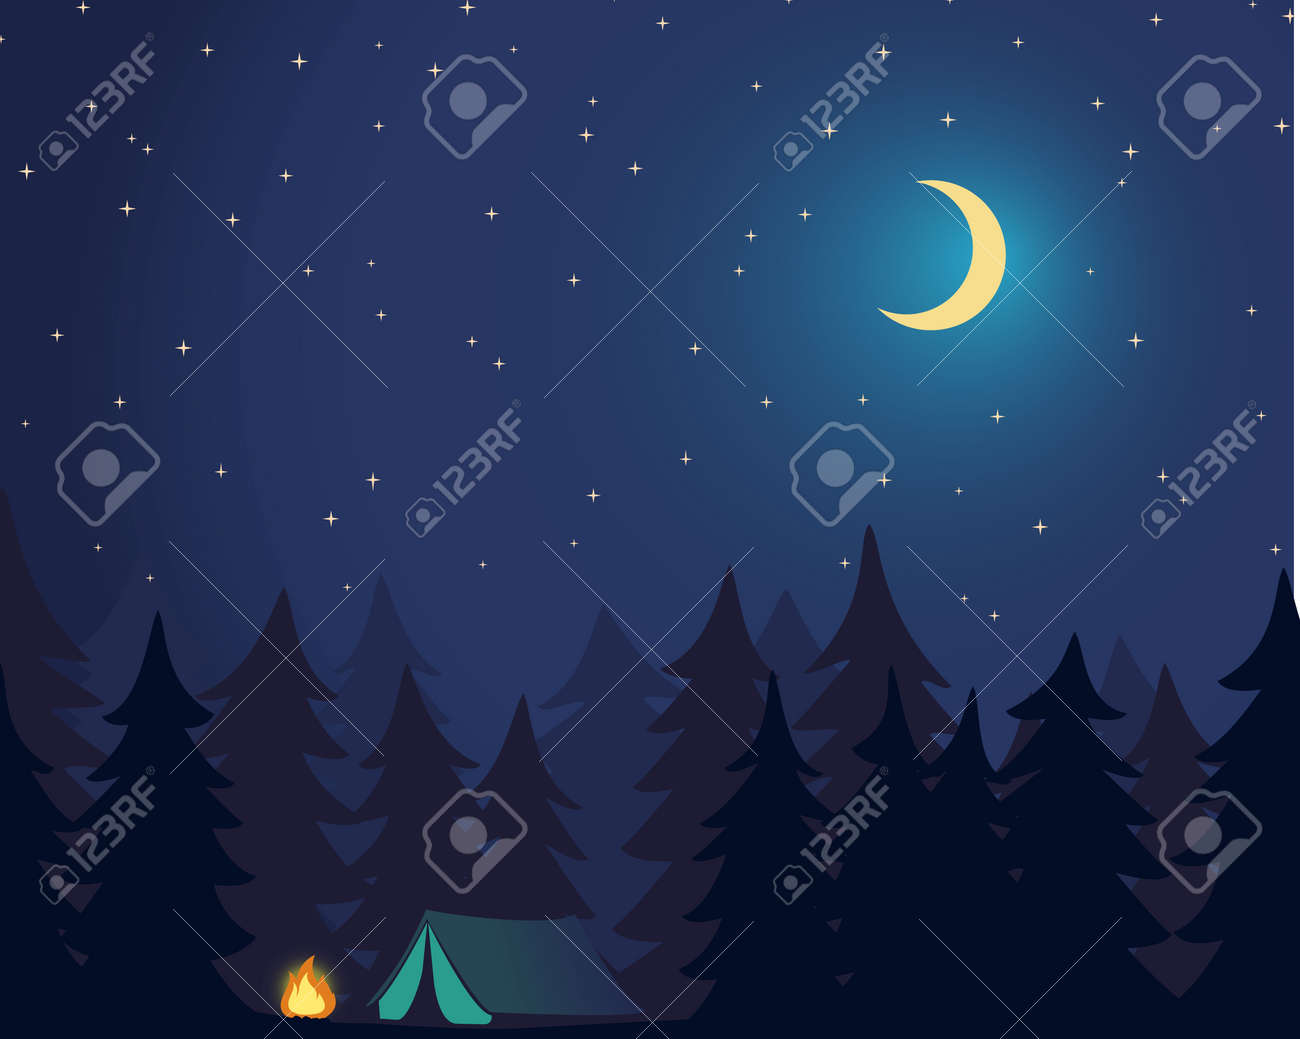 Camp Outdoor. Campground in Forest. Night sky with stars and moon. Vector Illustration - 172543956